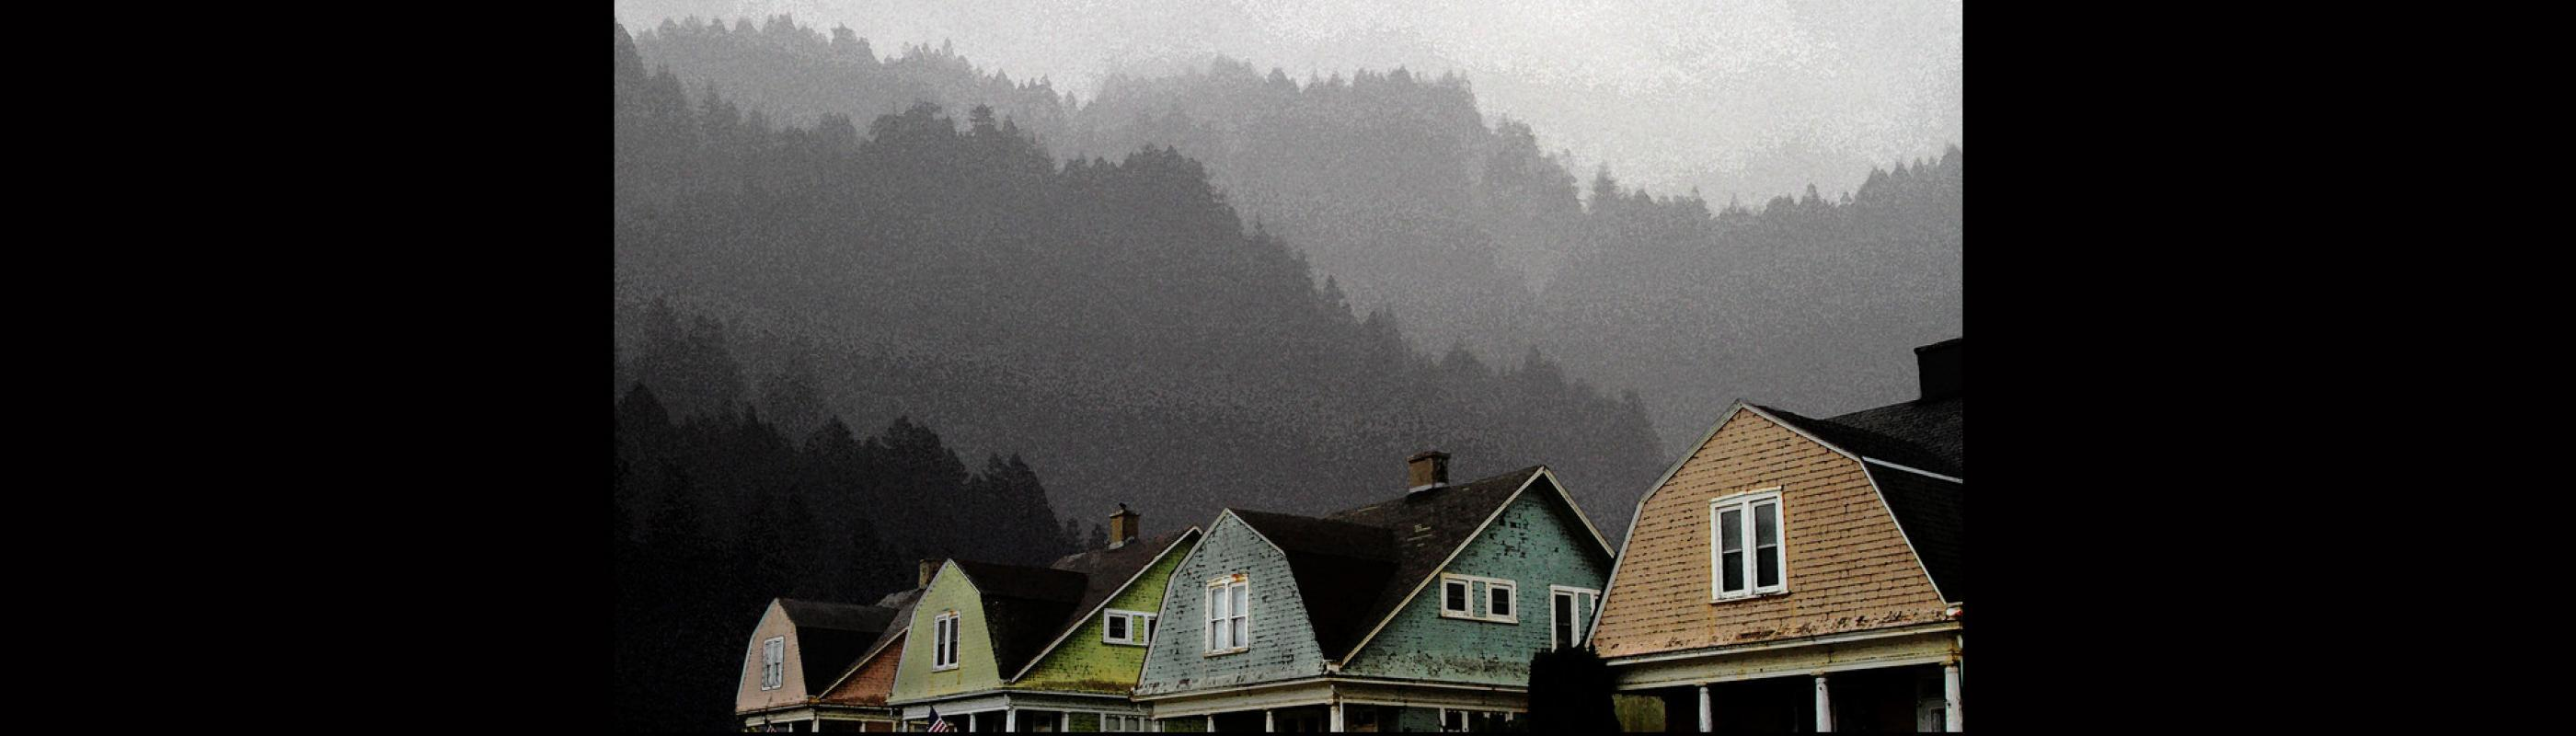 Row of houses with hills in background